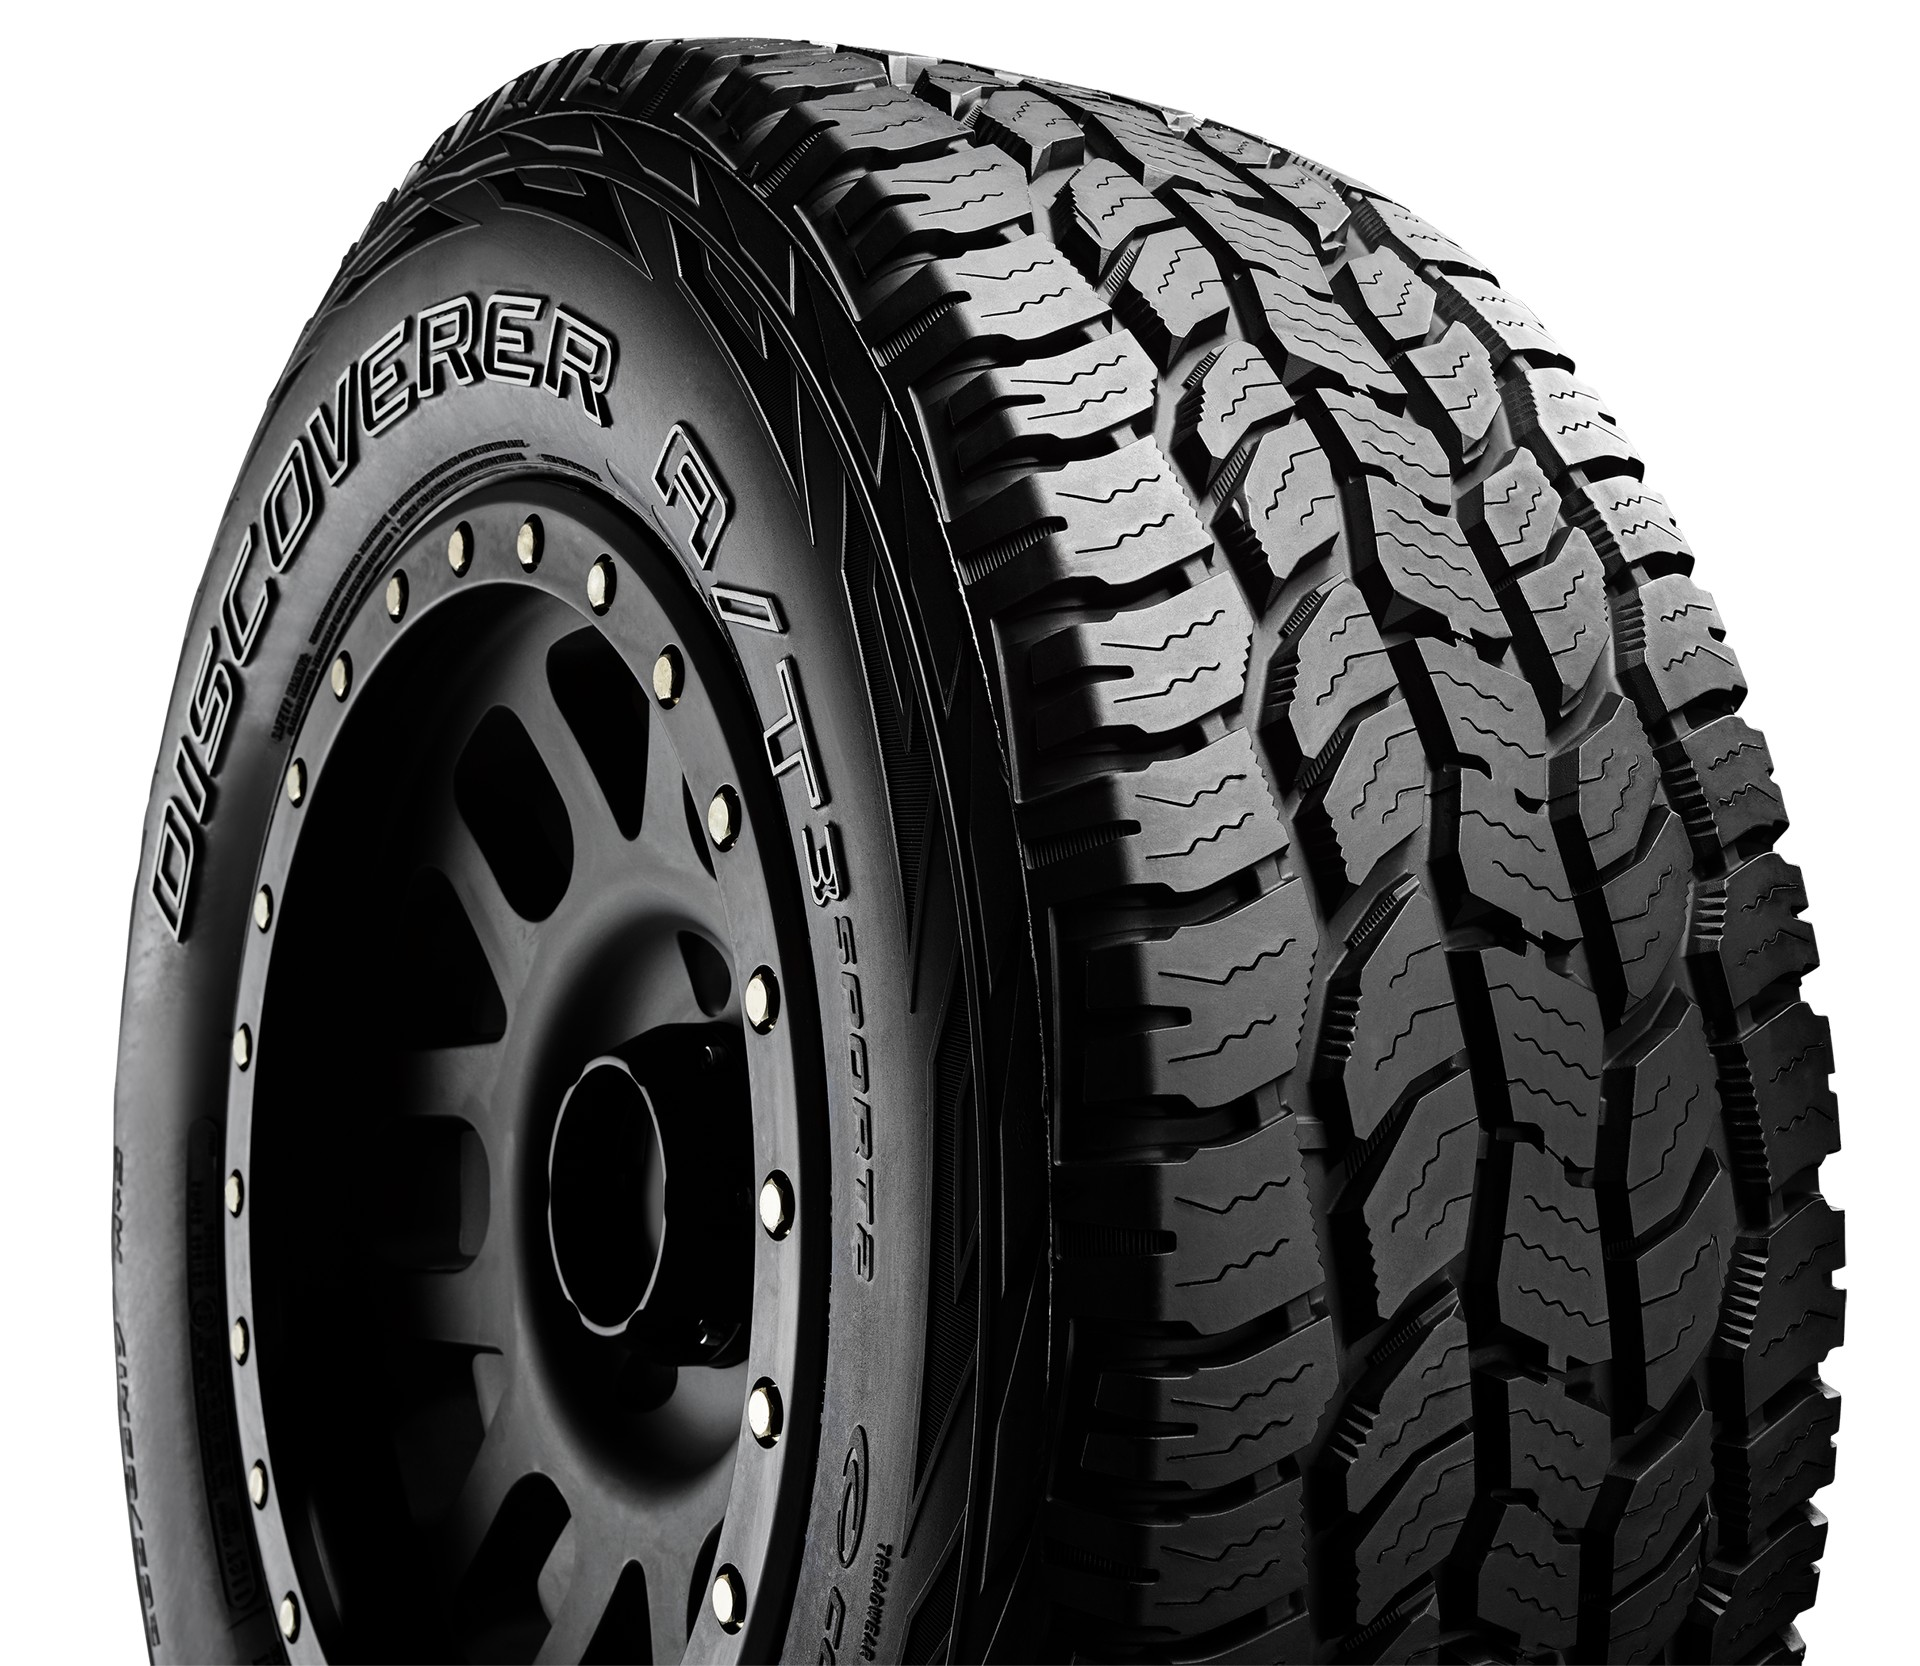 Gomme Nuove Cooper Tyres 235/70 R16 106T DISC.AT3 SPORT2 OWL M+S pneumatici nuovi All Season